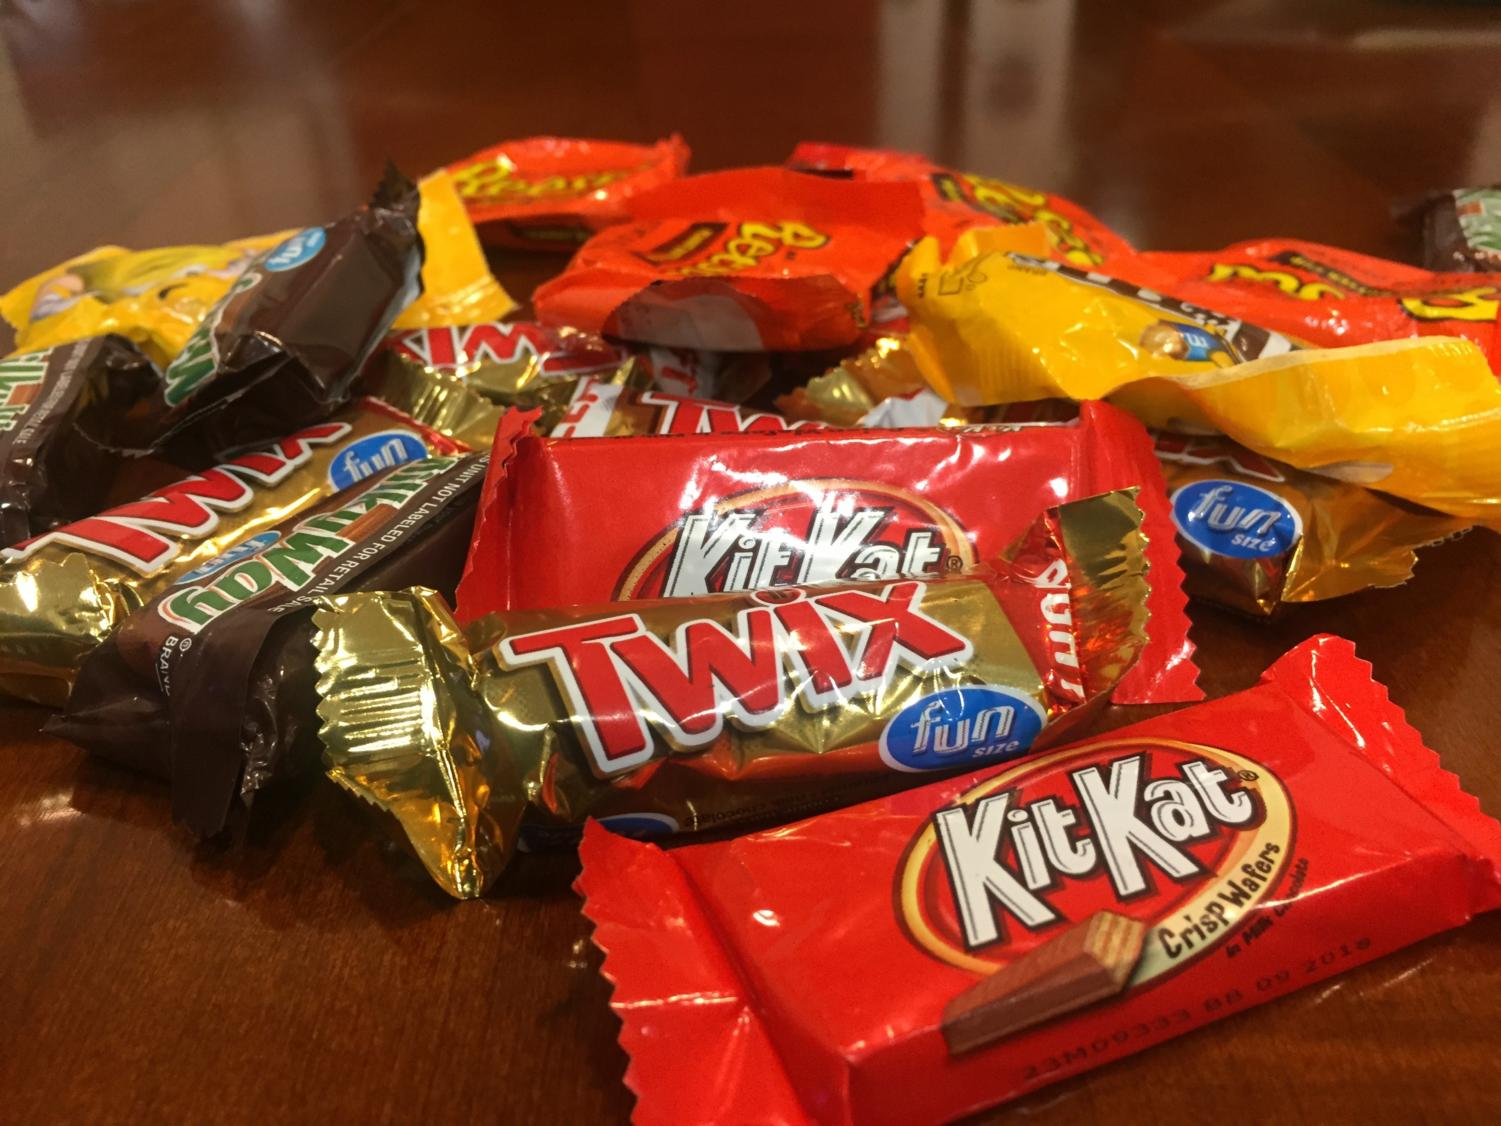 Portola voted for these top five Halloween candies.